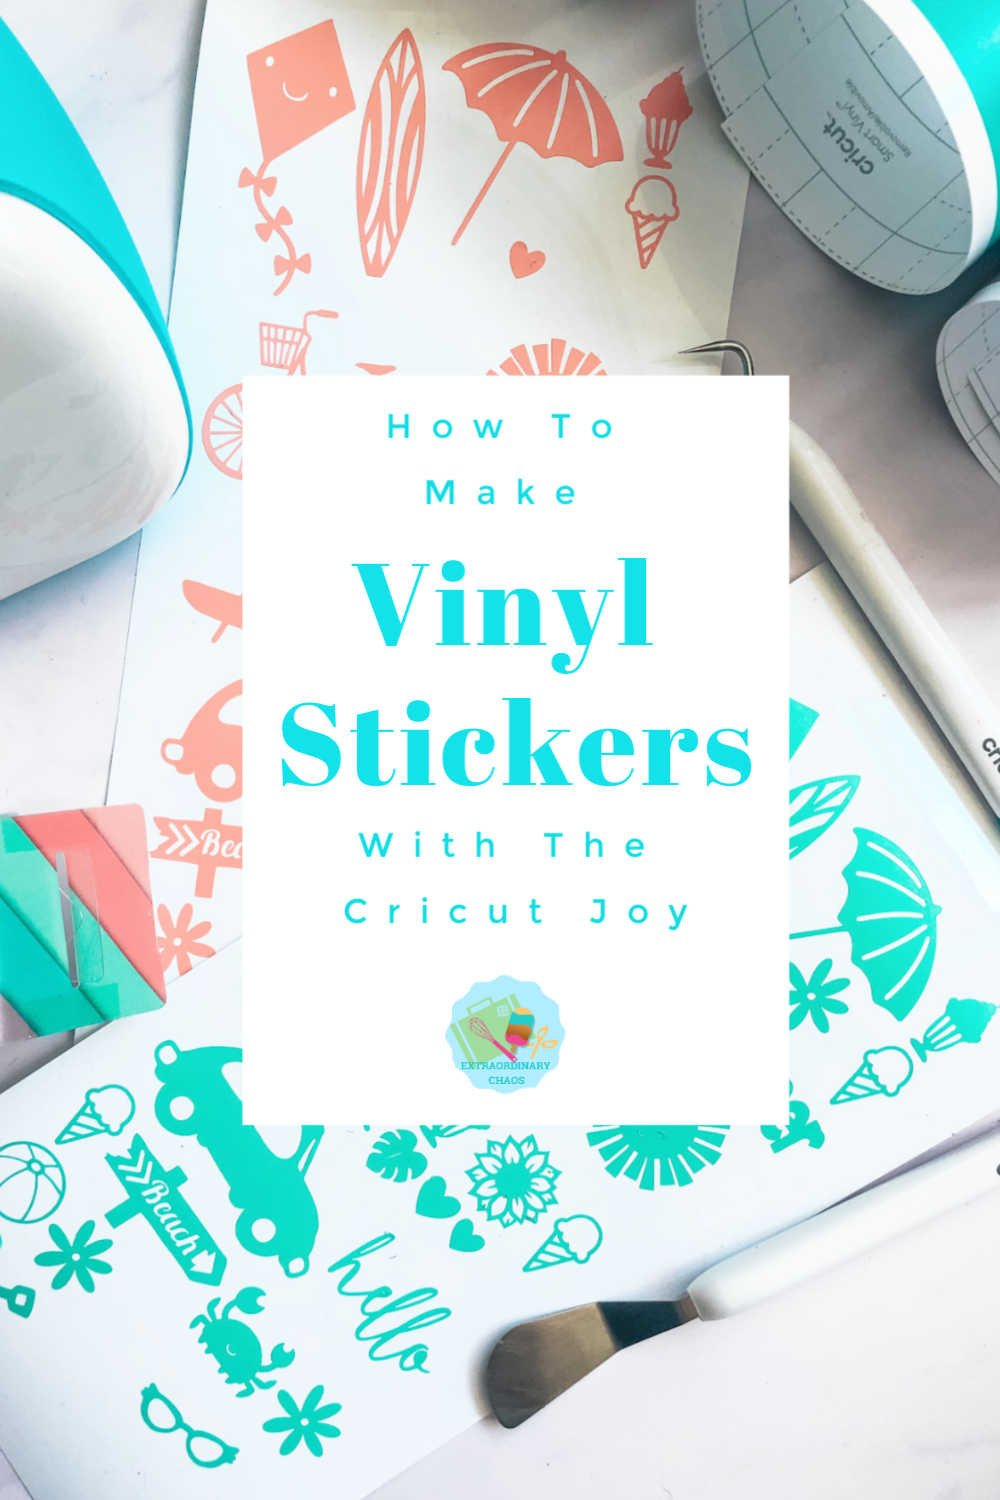 How To Make Cricut Vinyl Stickers, these can be made to sell for crafts and  parties or used for scrapbooking and school work